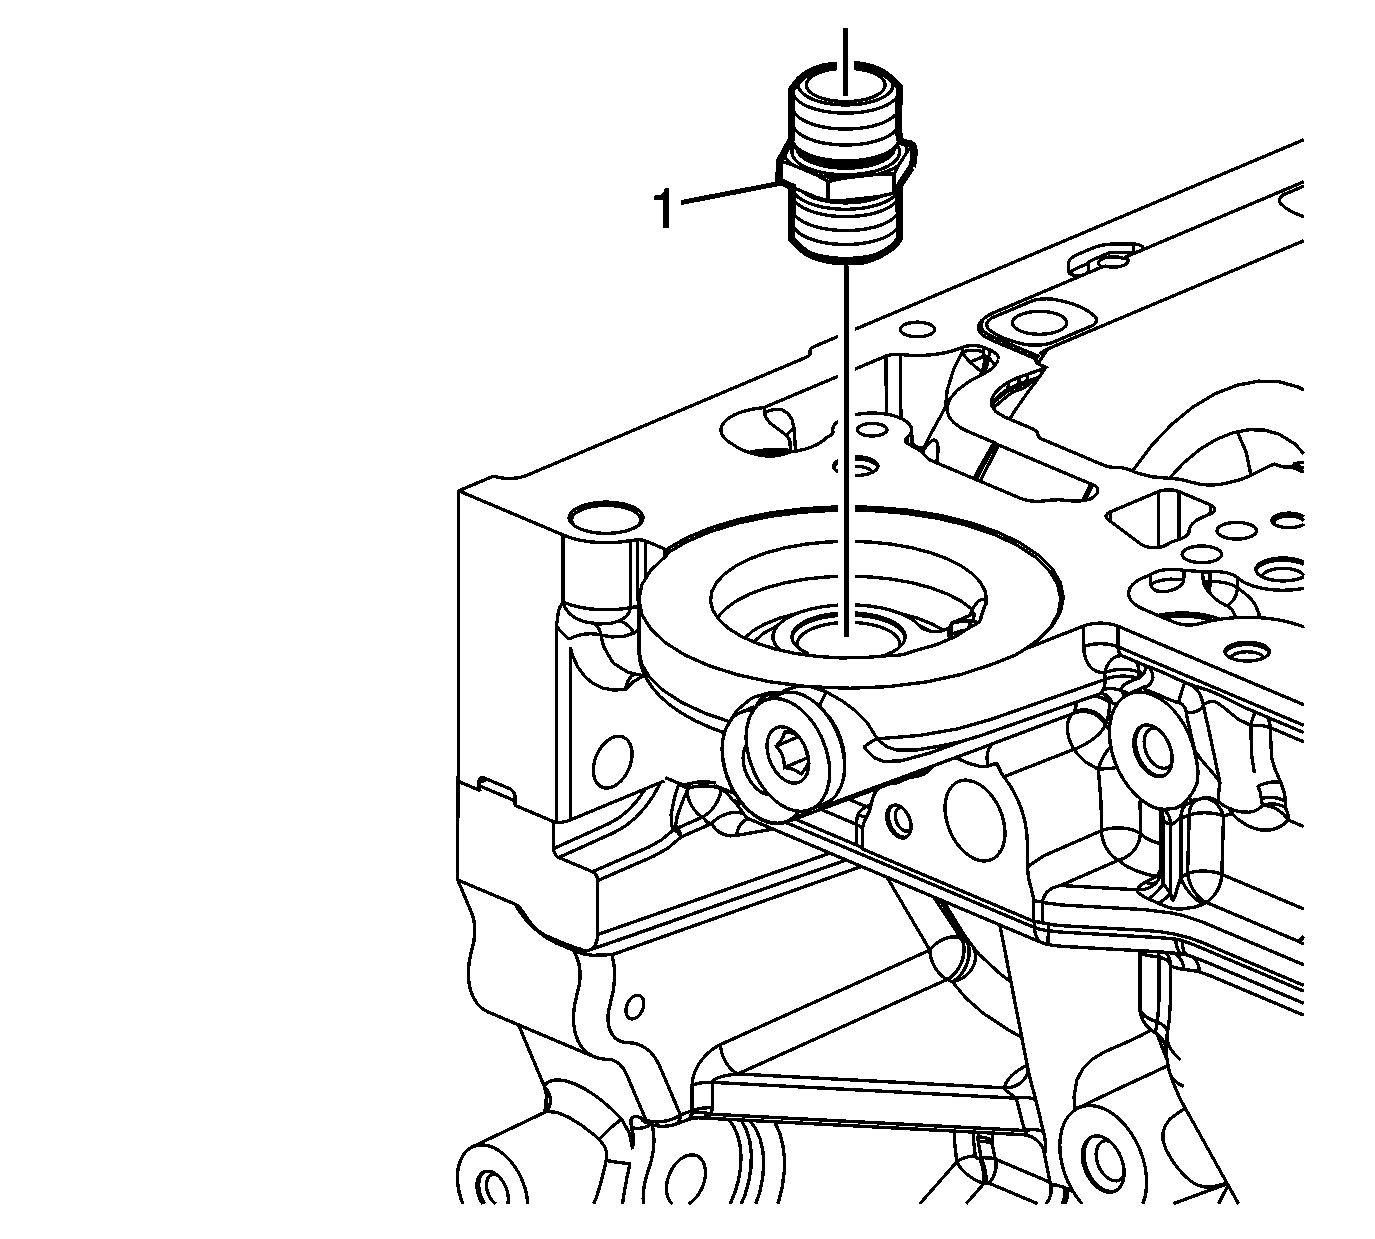 On a 2015 chevy malibu 2 5 how do you chand the oil pan assembly?